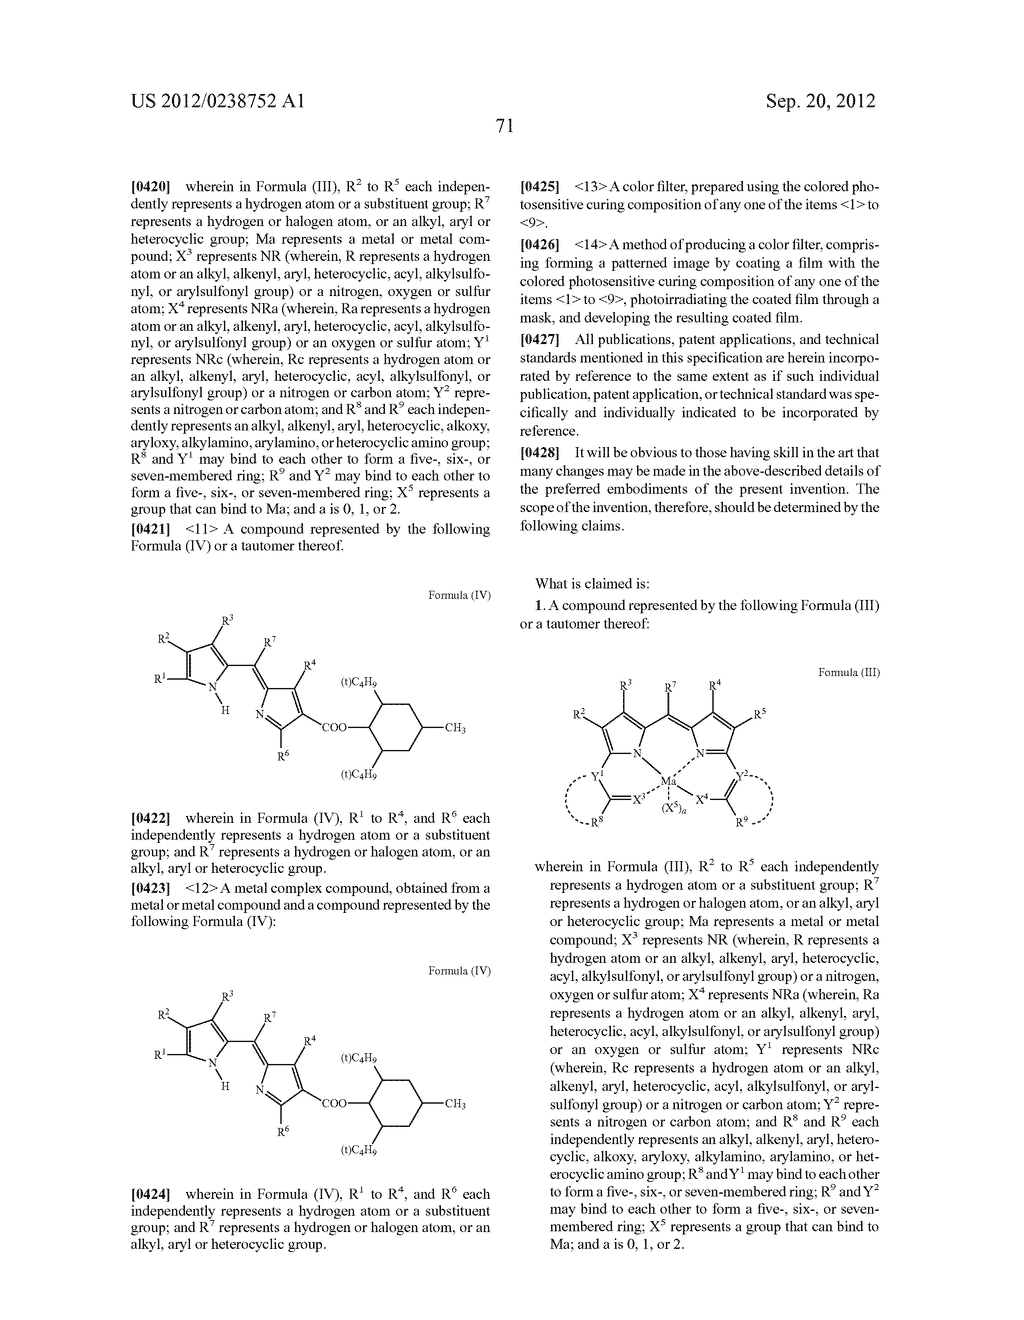 COMPOUND OR ITS TAUTOMER, METAL COMPLEX COMPOUND, COLORED PHOTOSENSITIVE     CURING COMPOSITION, COLOR FILTER, AND PRODUCTION - diagram, schematic, and image 72